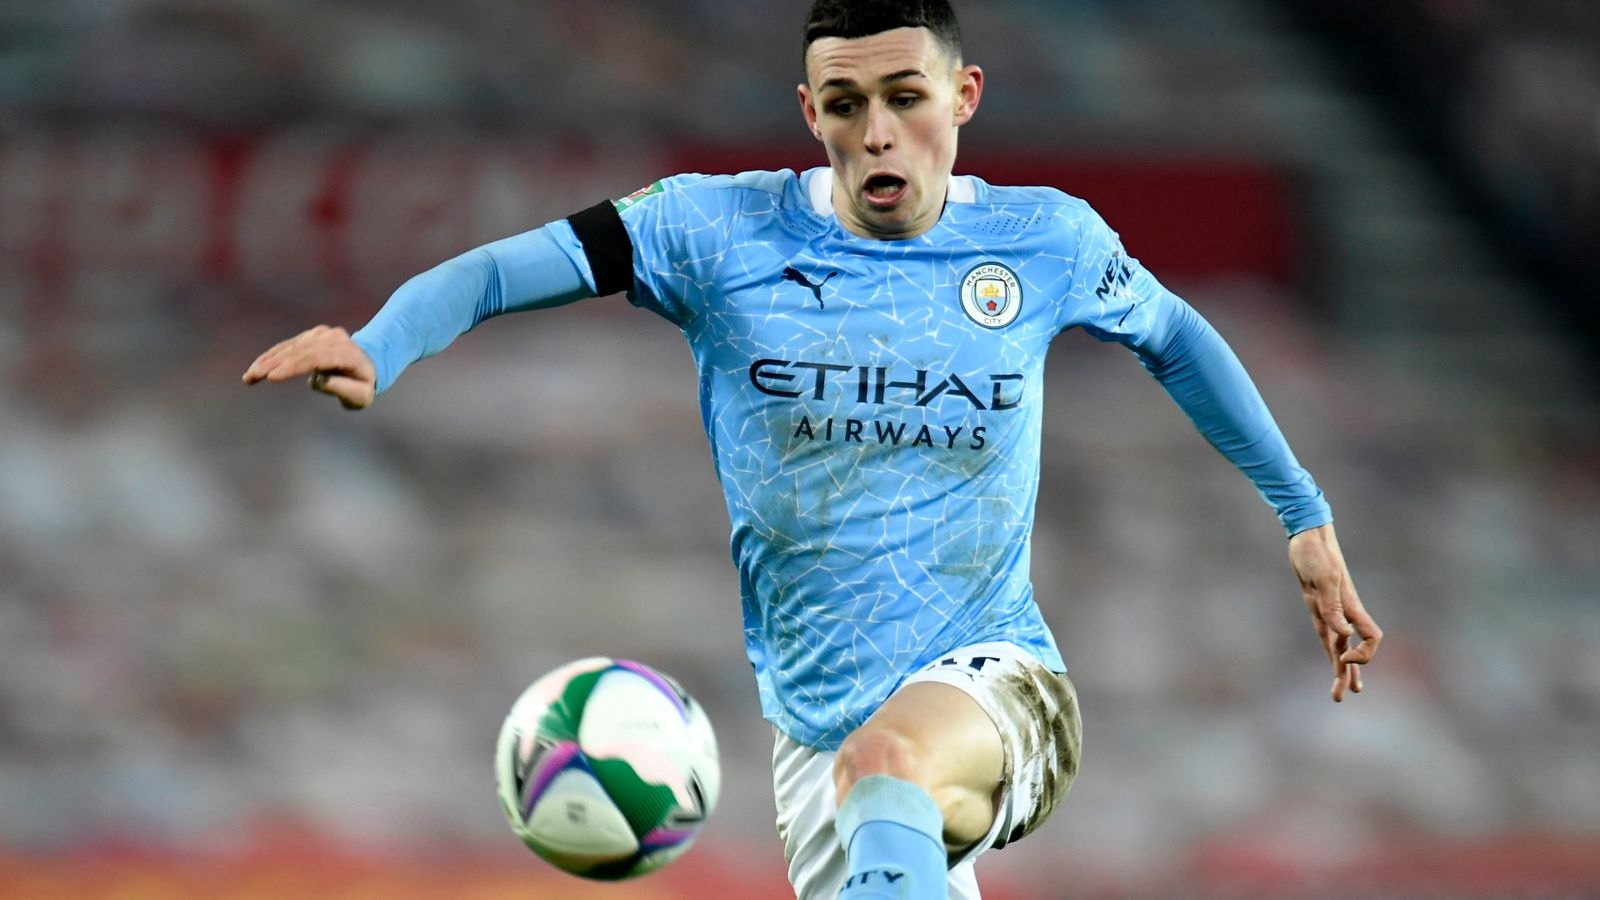 Phil Foden: Swansea coach Steve Cooper discusses how the Manchester City star turned his potential into action |  football news